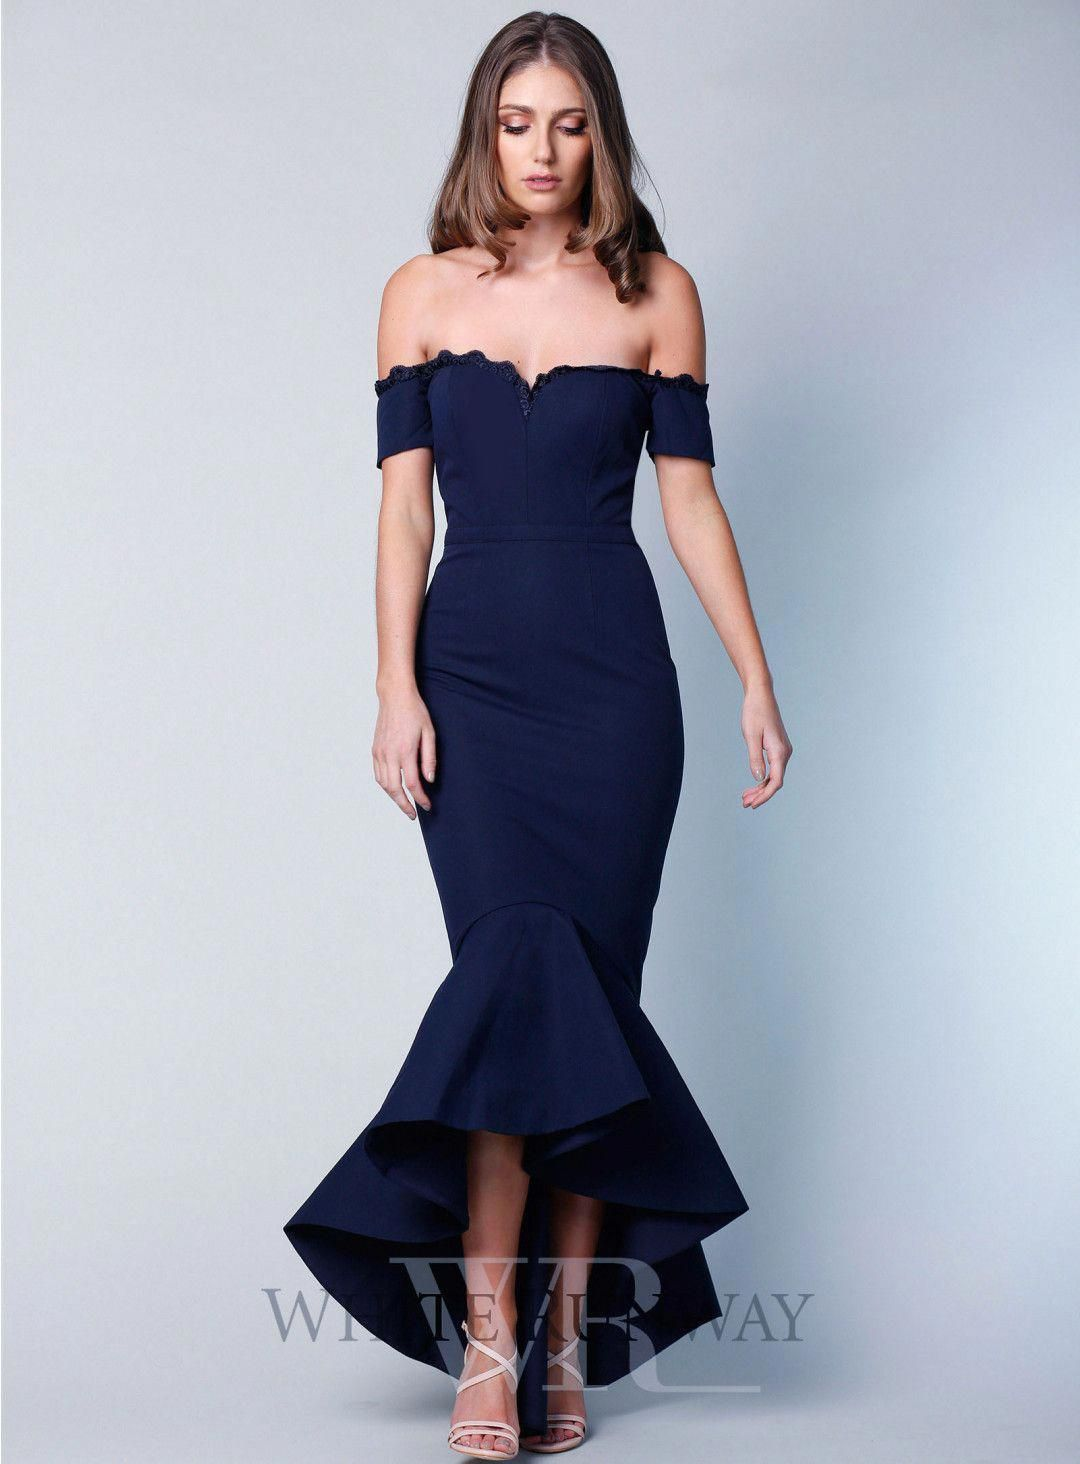 defaf170b9f1 Camille Dress. A stunning midi length dress by Elle Zeitoune. A fitted  off-shoulder style featuring mermaid fishtail and thin lace on the neckline.